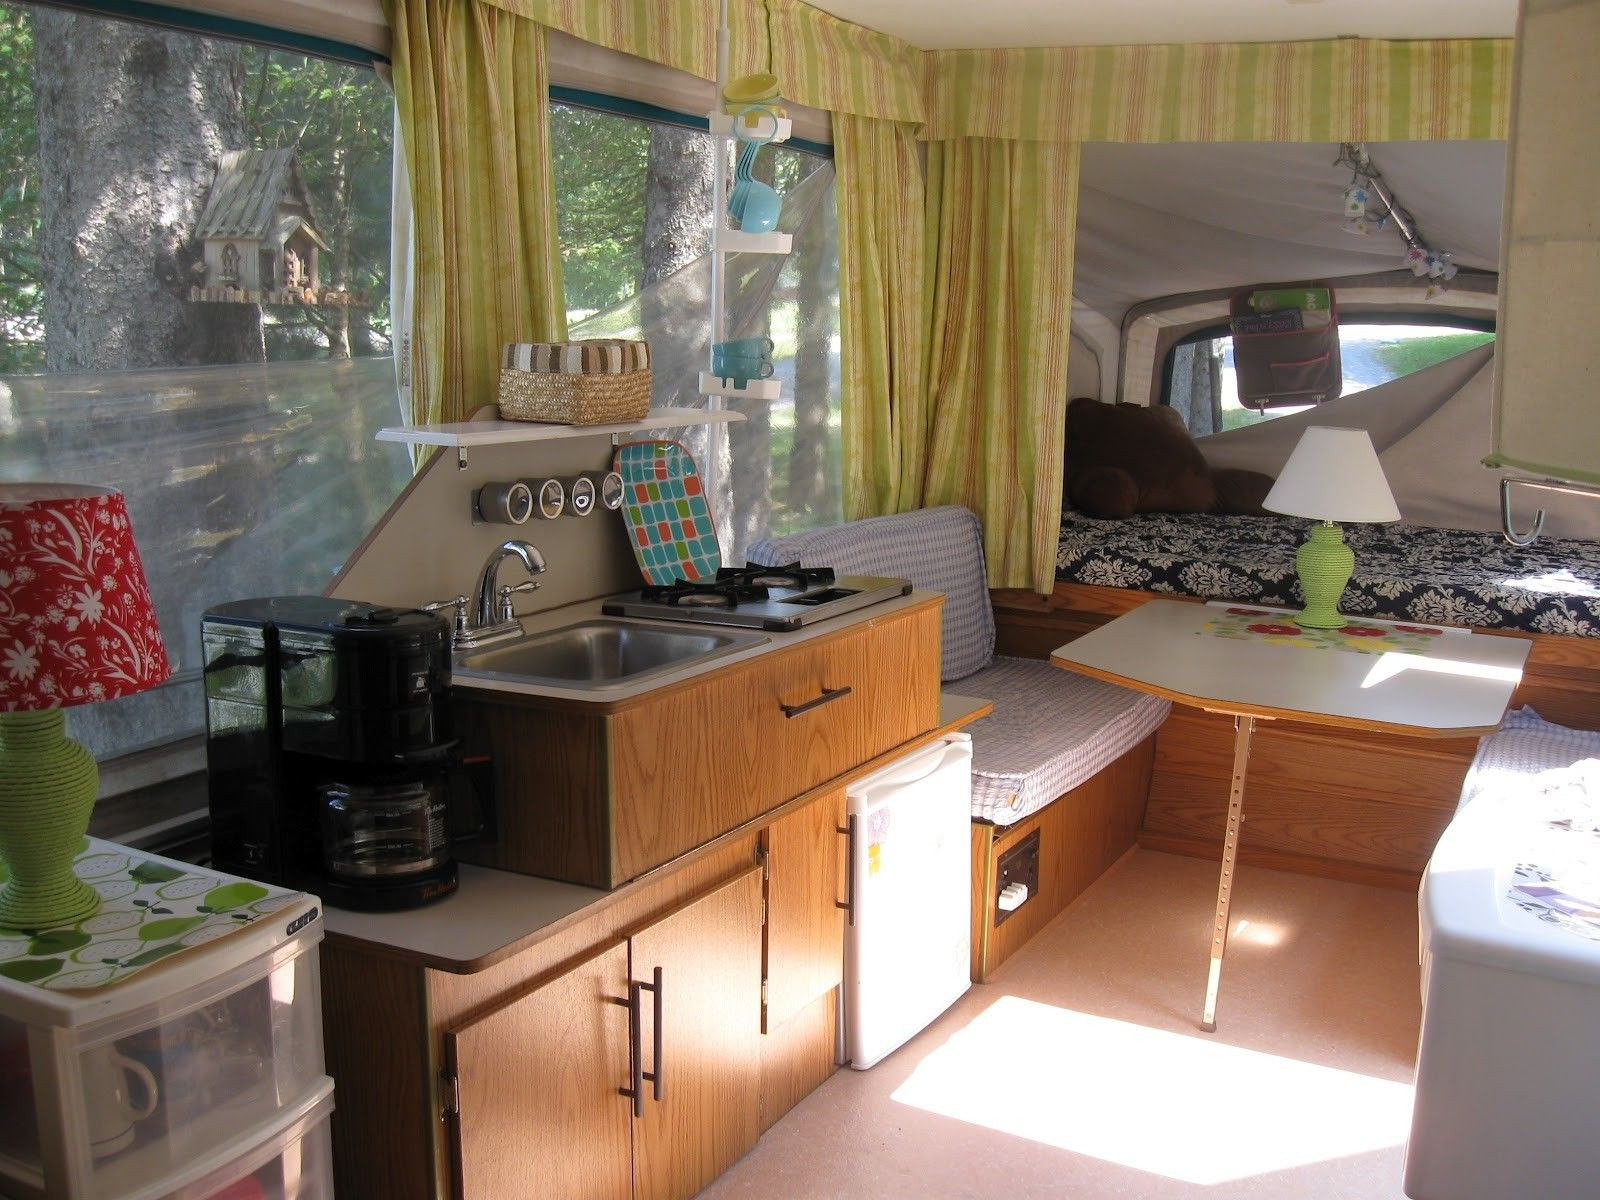 20 Vintage Camper Interior Ideas For Pop Up Camper Asia